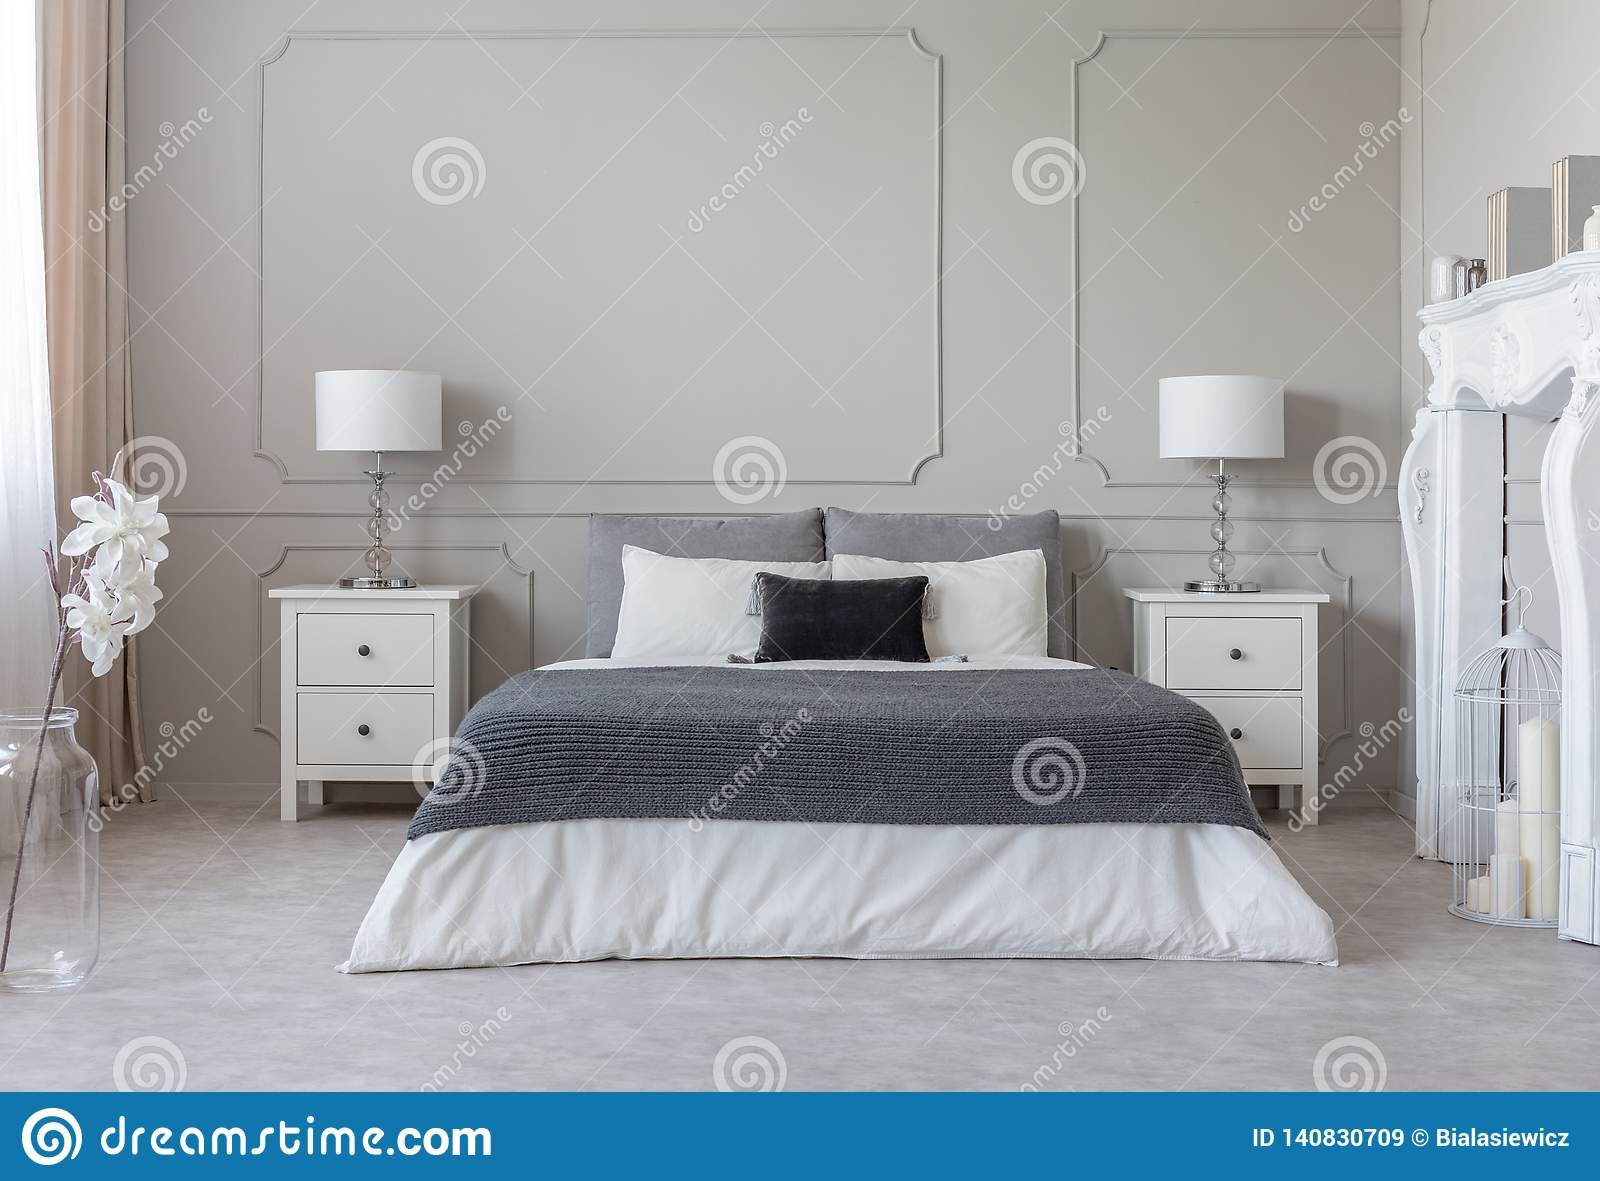 Grey Blanket On White Bedding On Comfortable King Size Bed